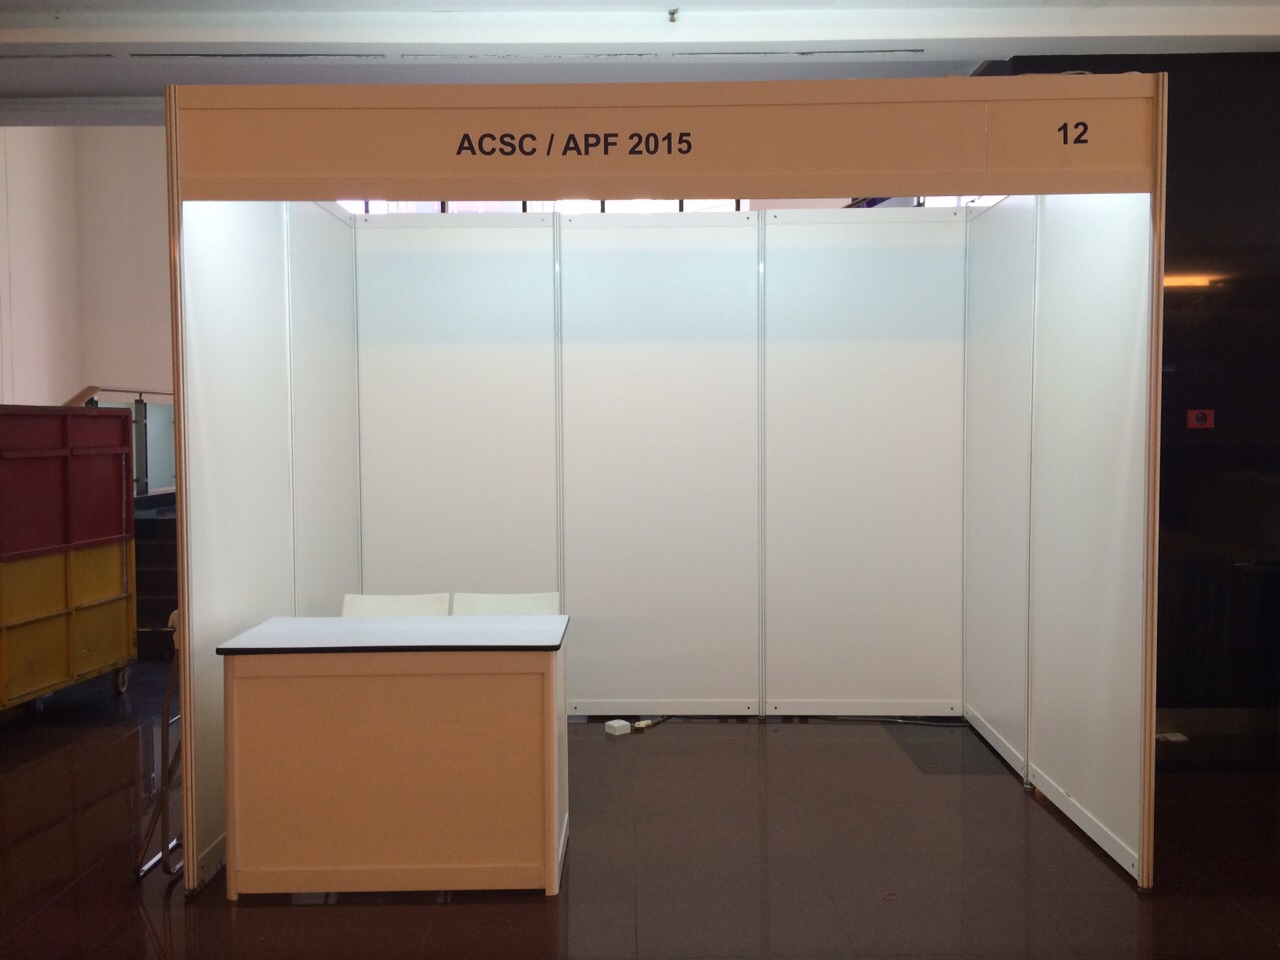 Exhibition Booth Rental Singapore : Exhibition booth rental in malaysia backdrop display